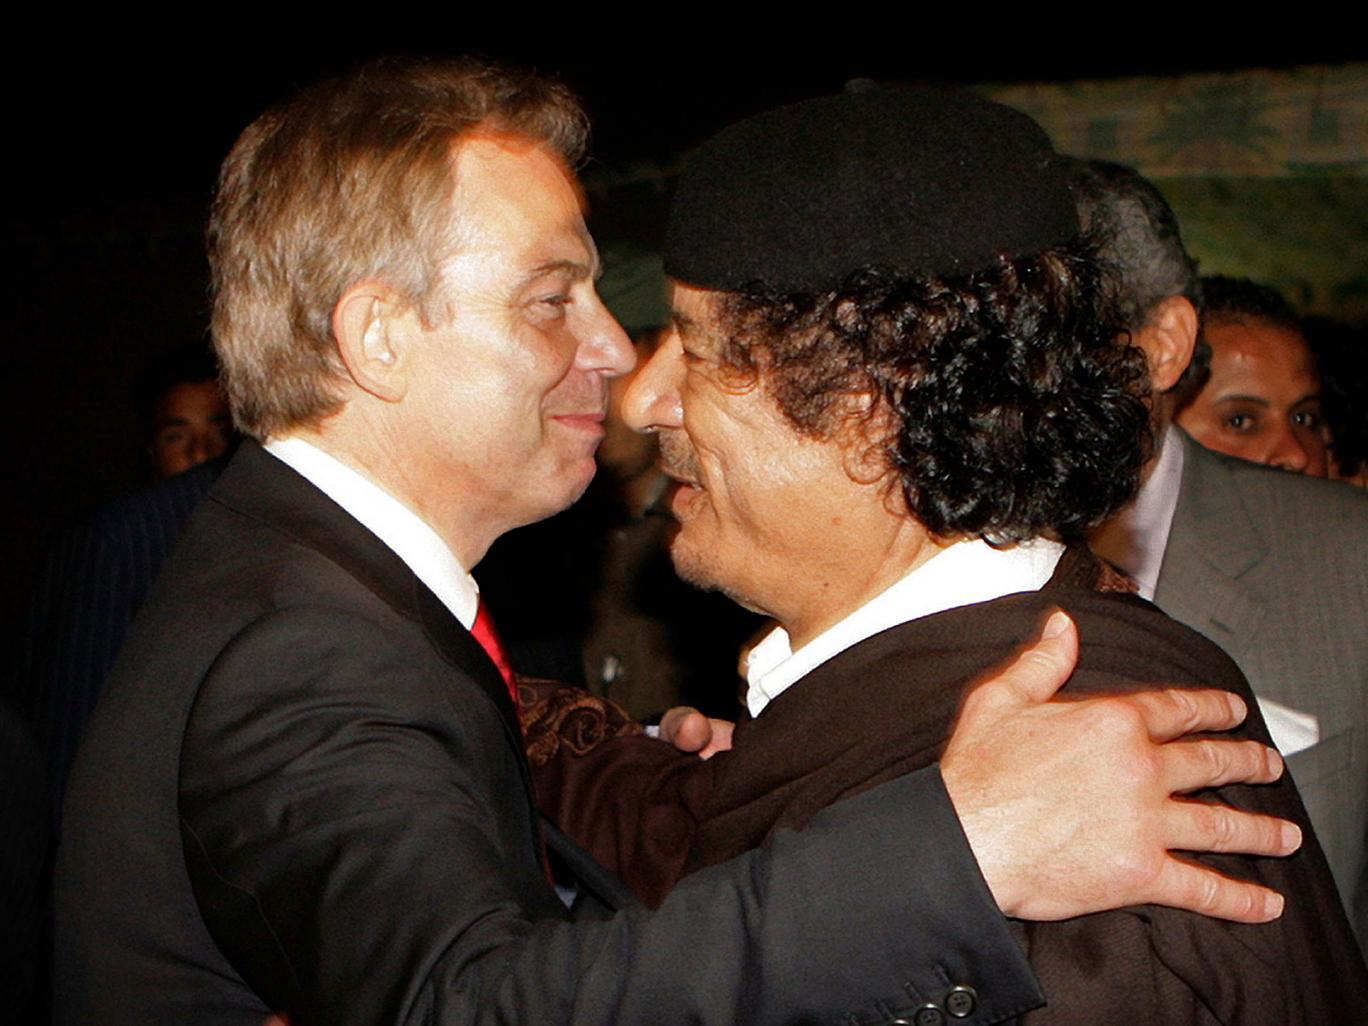 Leaked Email Shows Tony Blair Told Gaddafi To Hide And Avoid Capture UNILAD blair gaddafi4